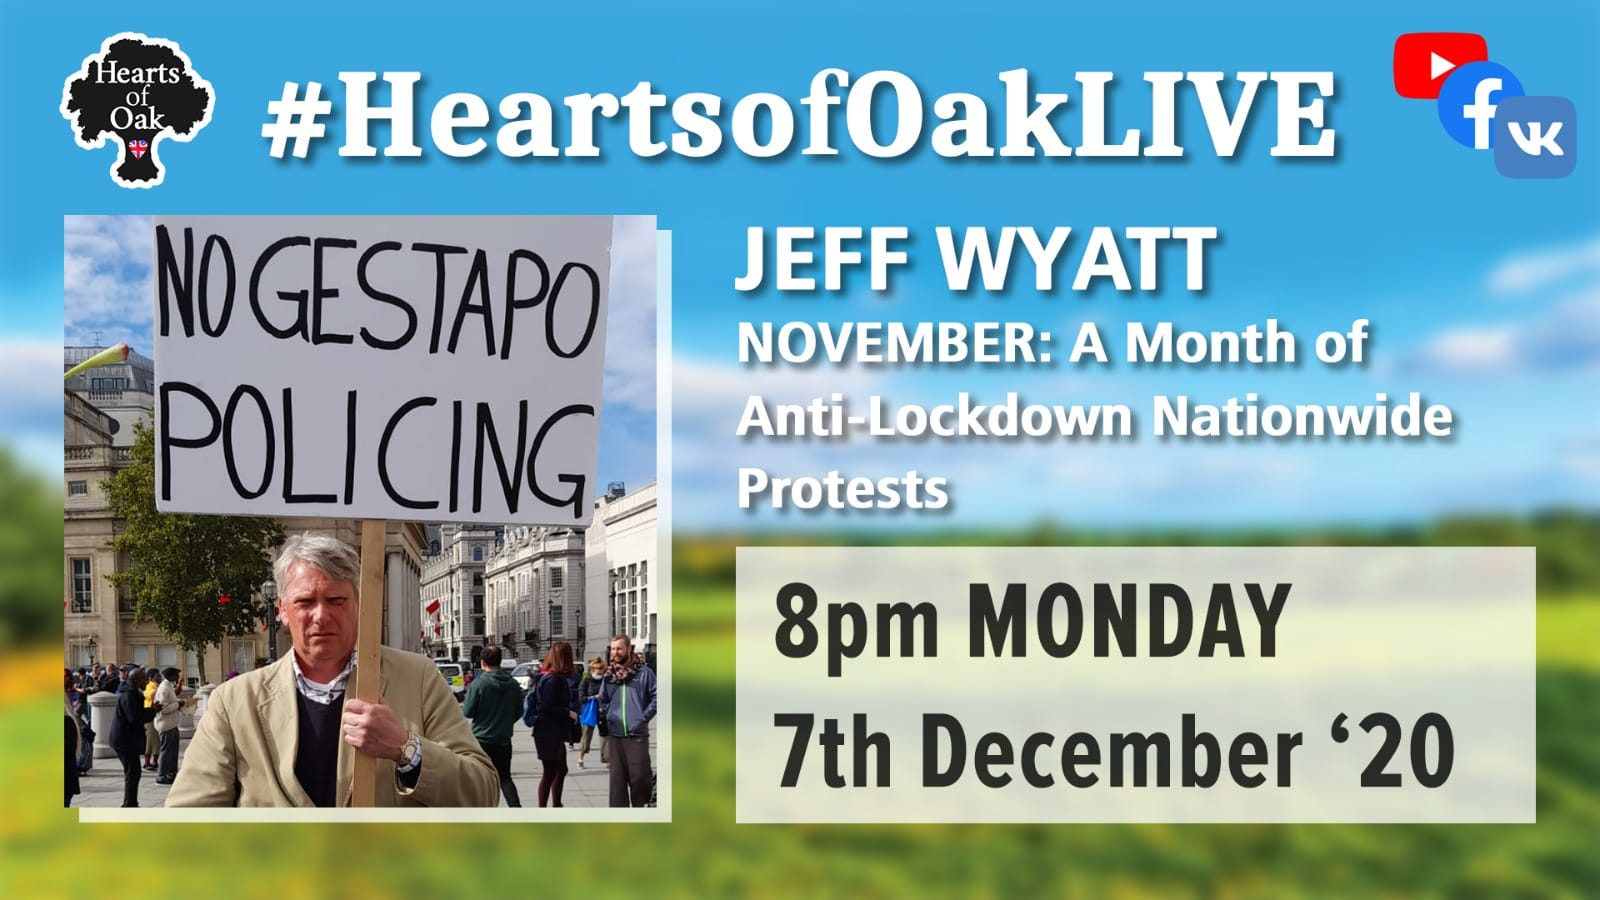 Jeff Wyatt on a month of anti-lockdown protests